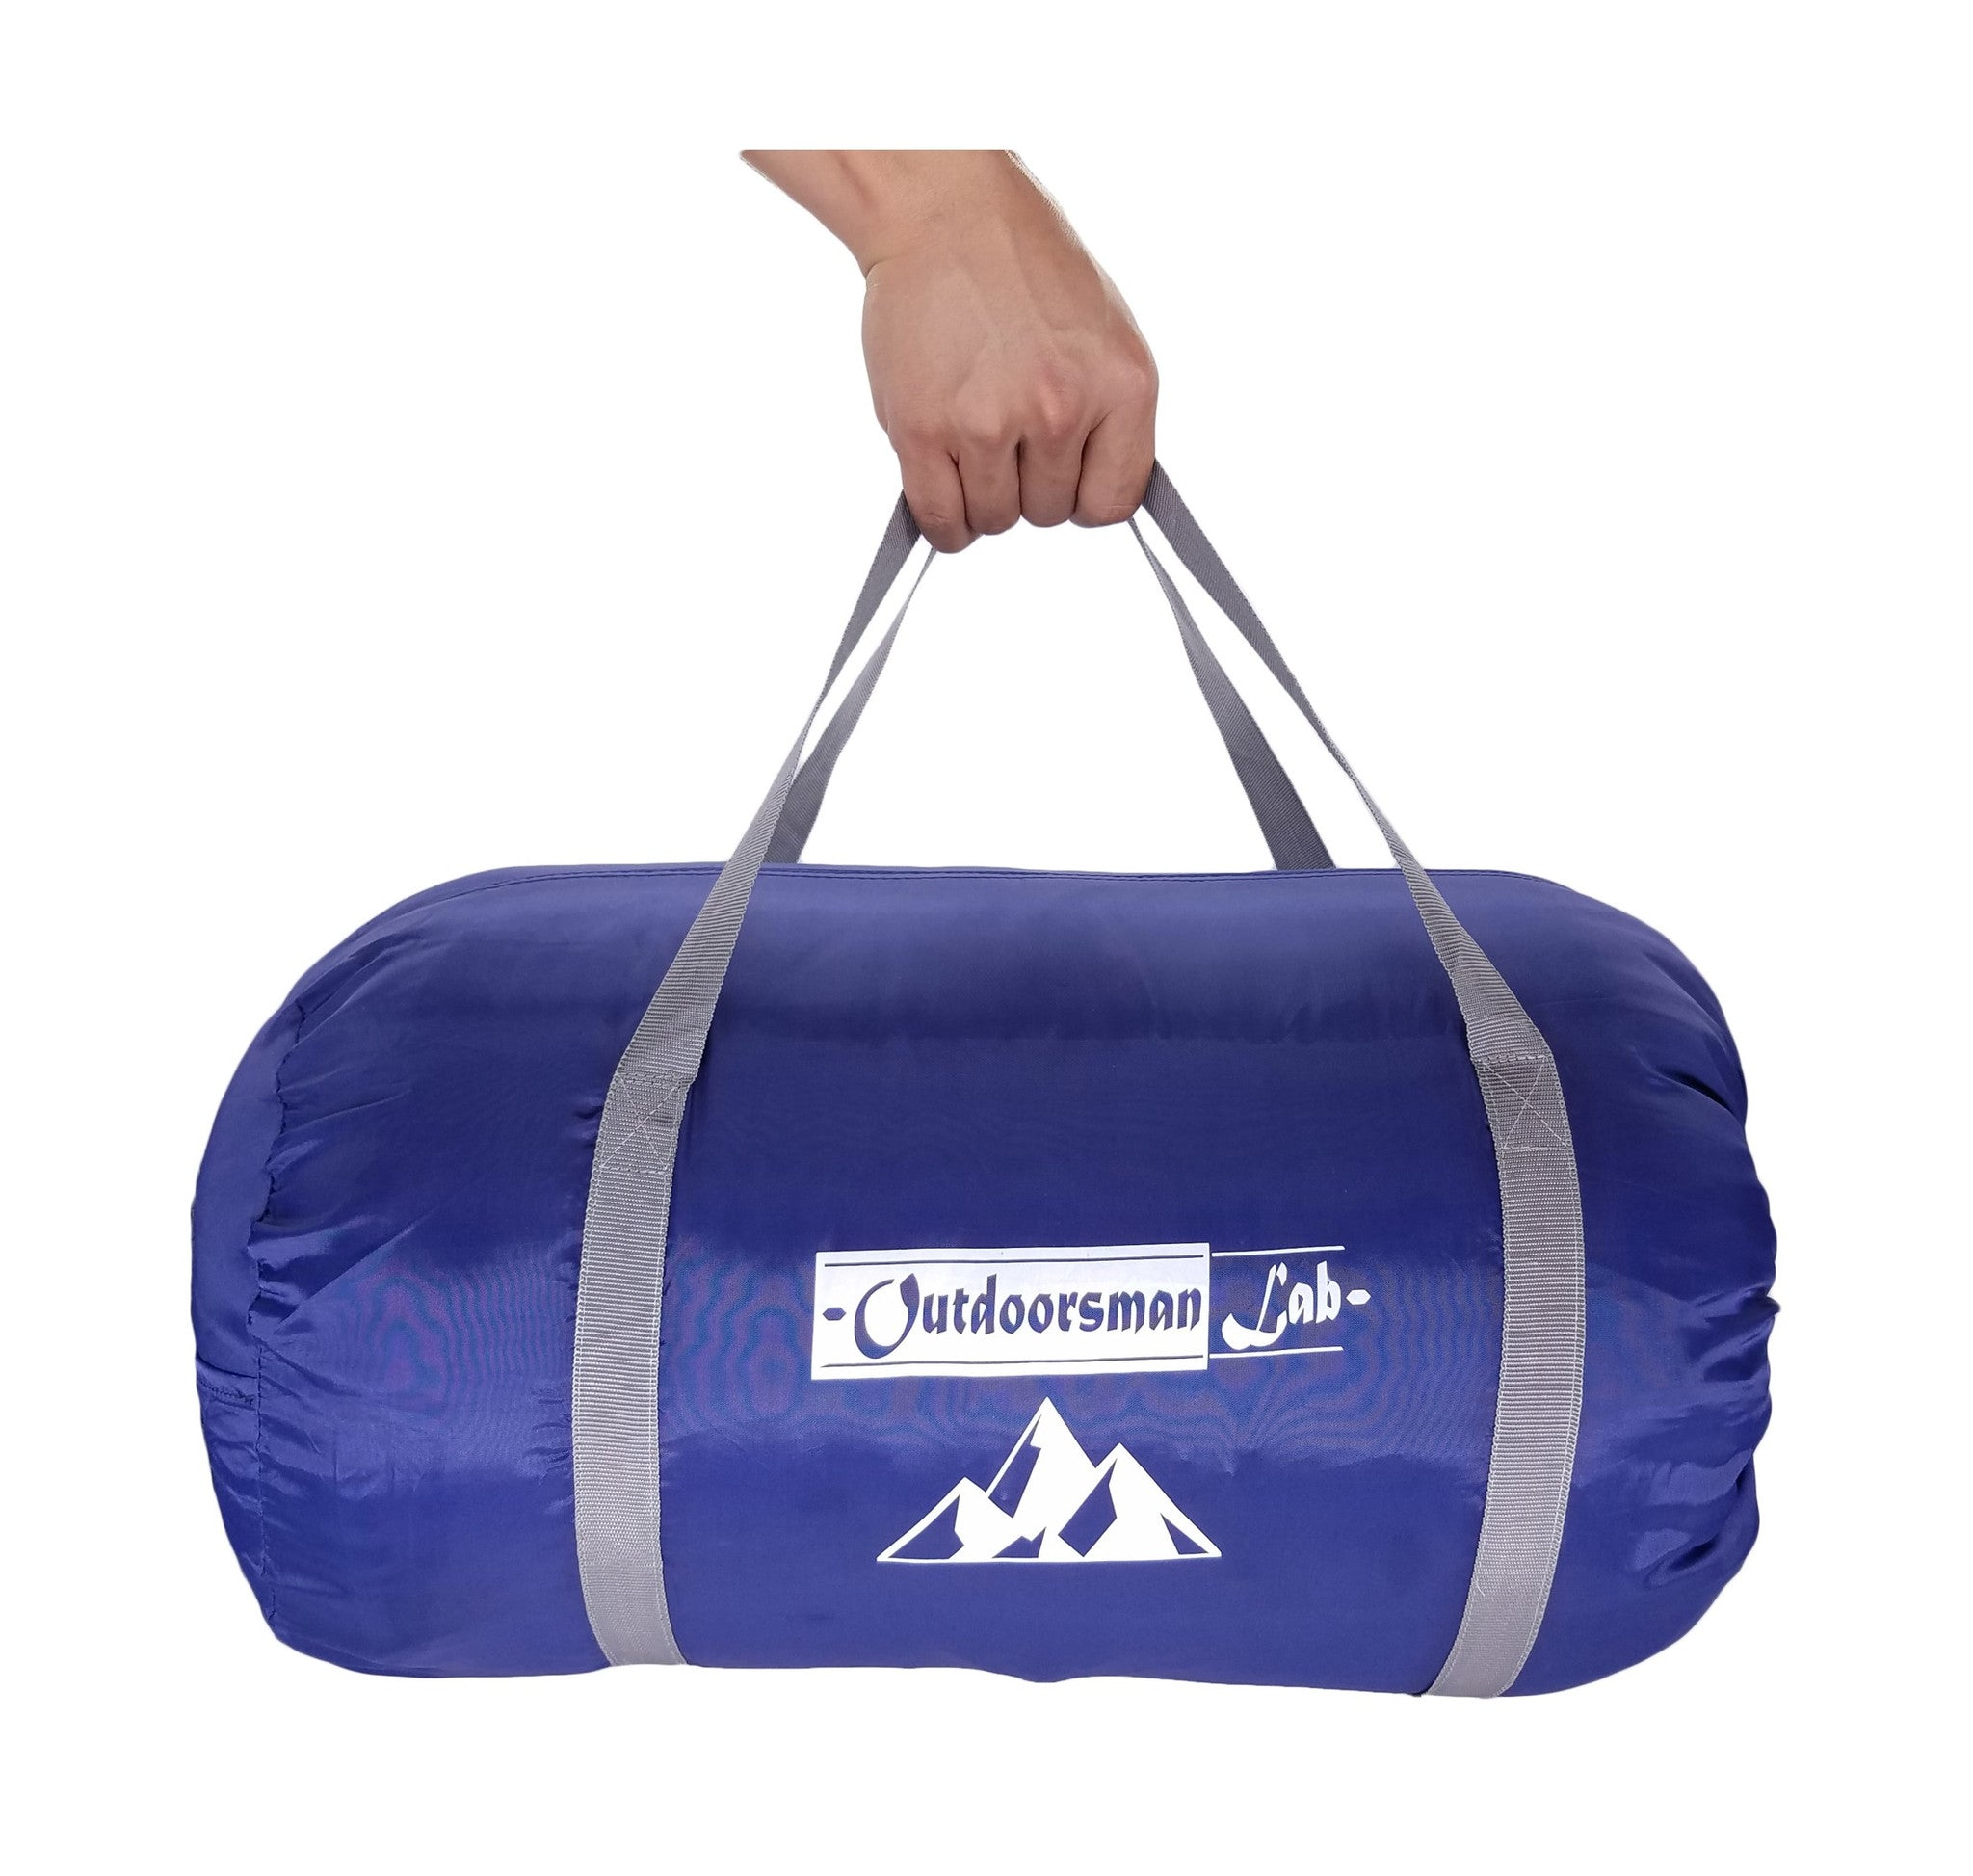 Double Sleeping Bag - OutdoorsmanLab